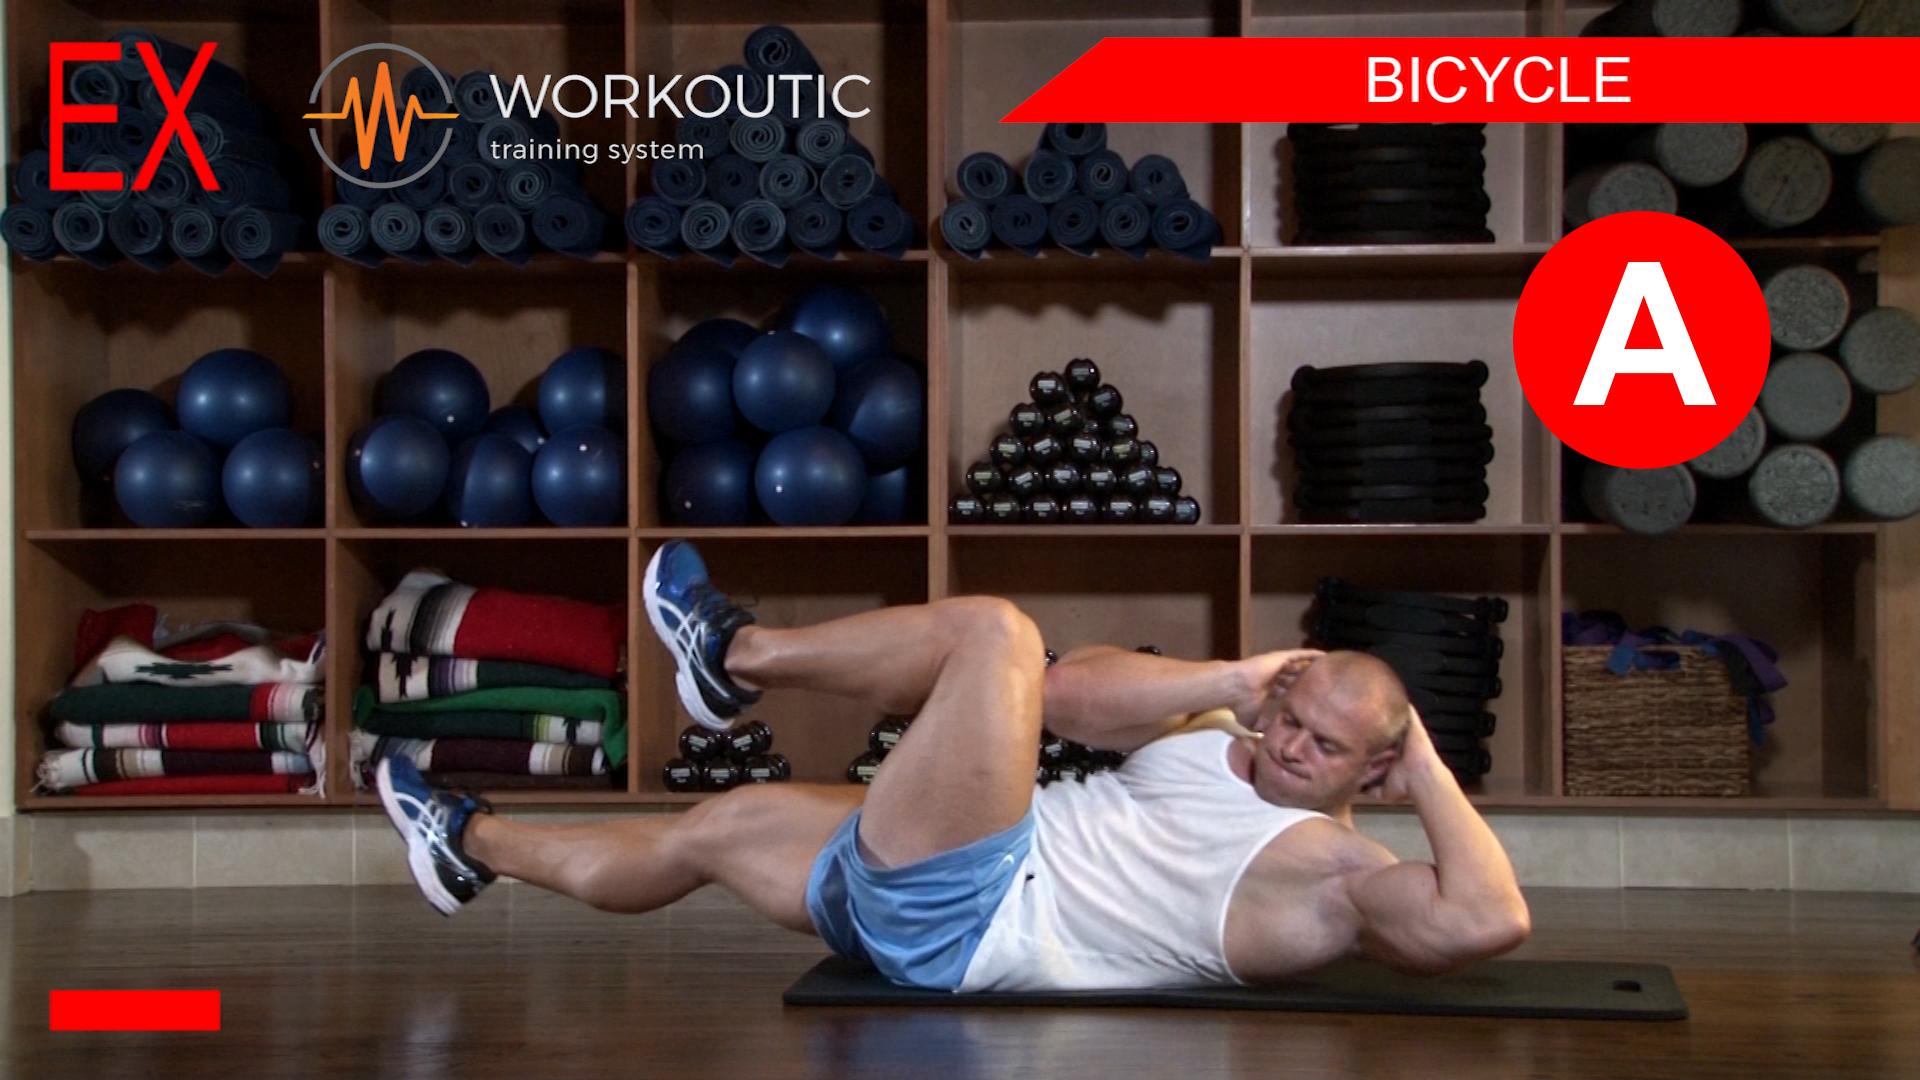 Abs Exercises - Workutic - 6 pack special - Bicycle Inhale